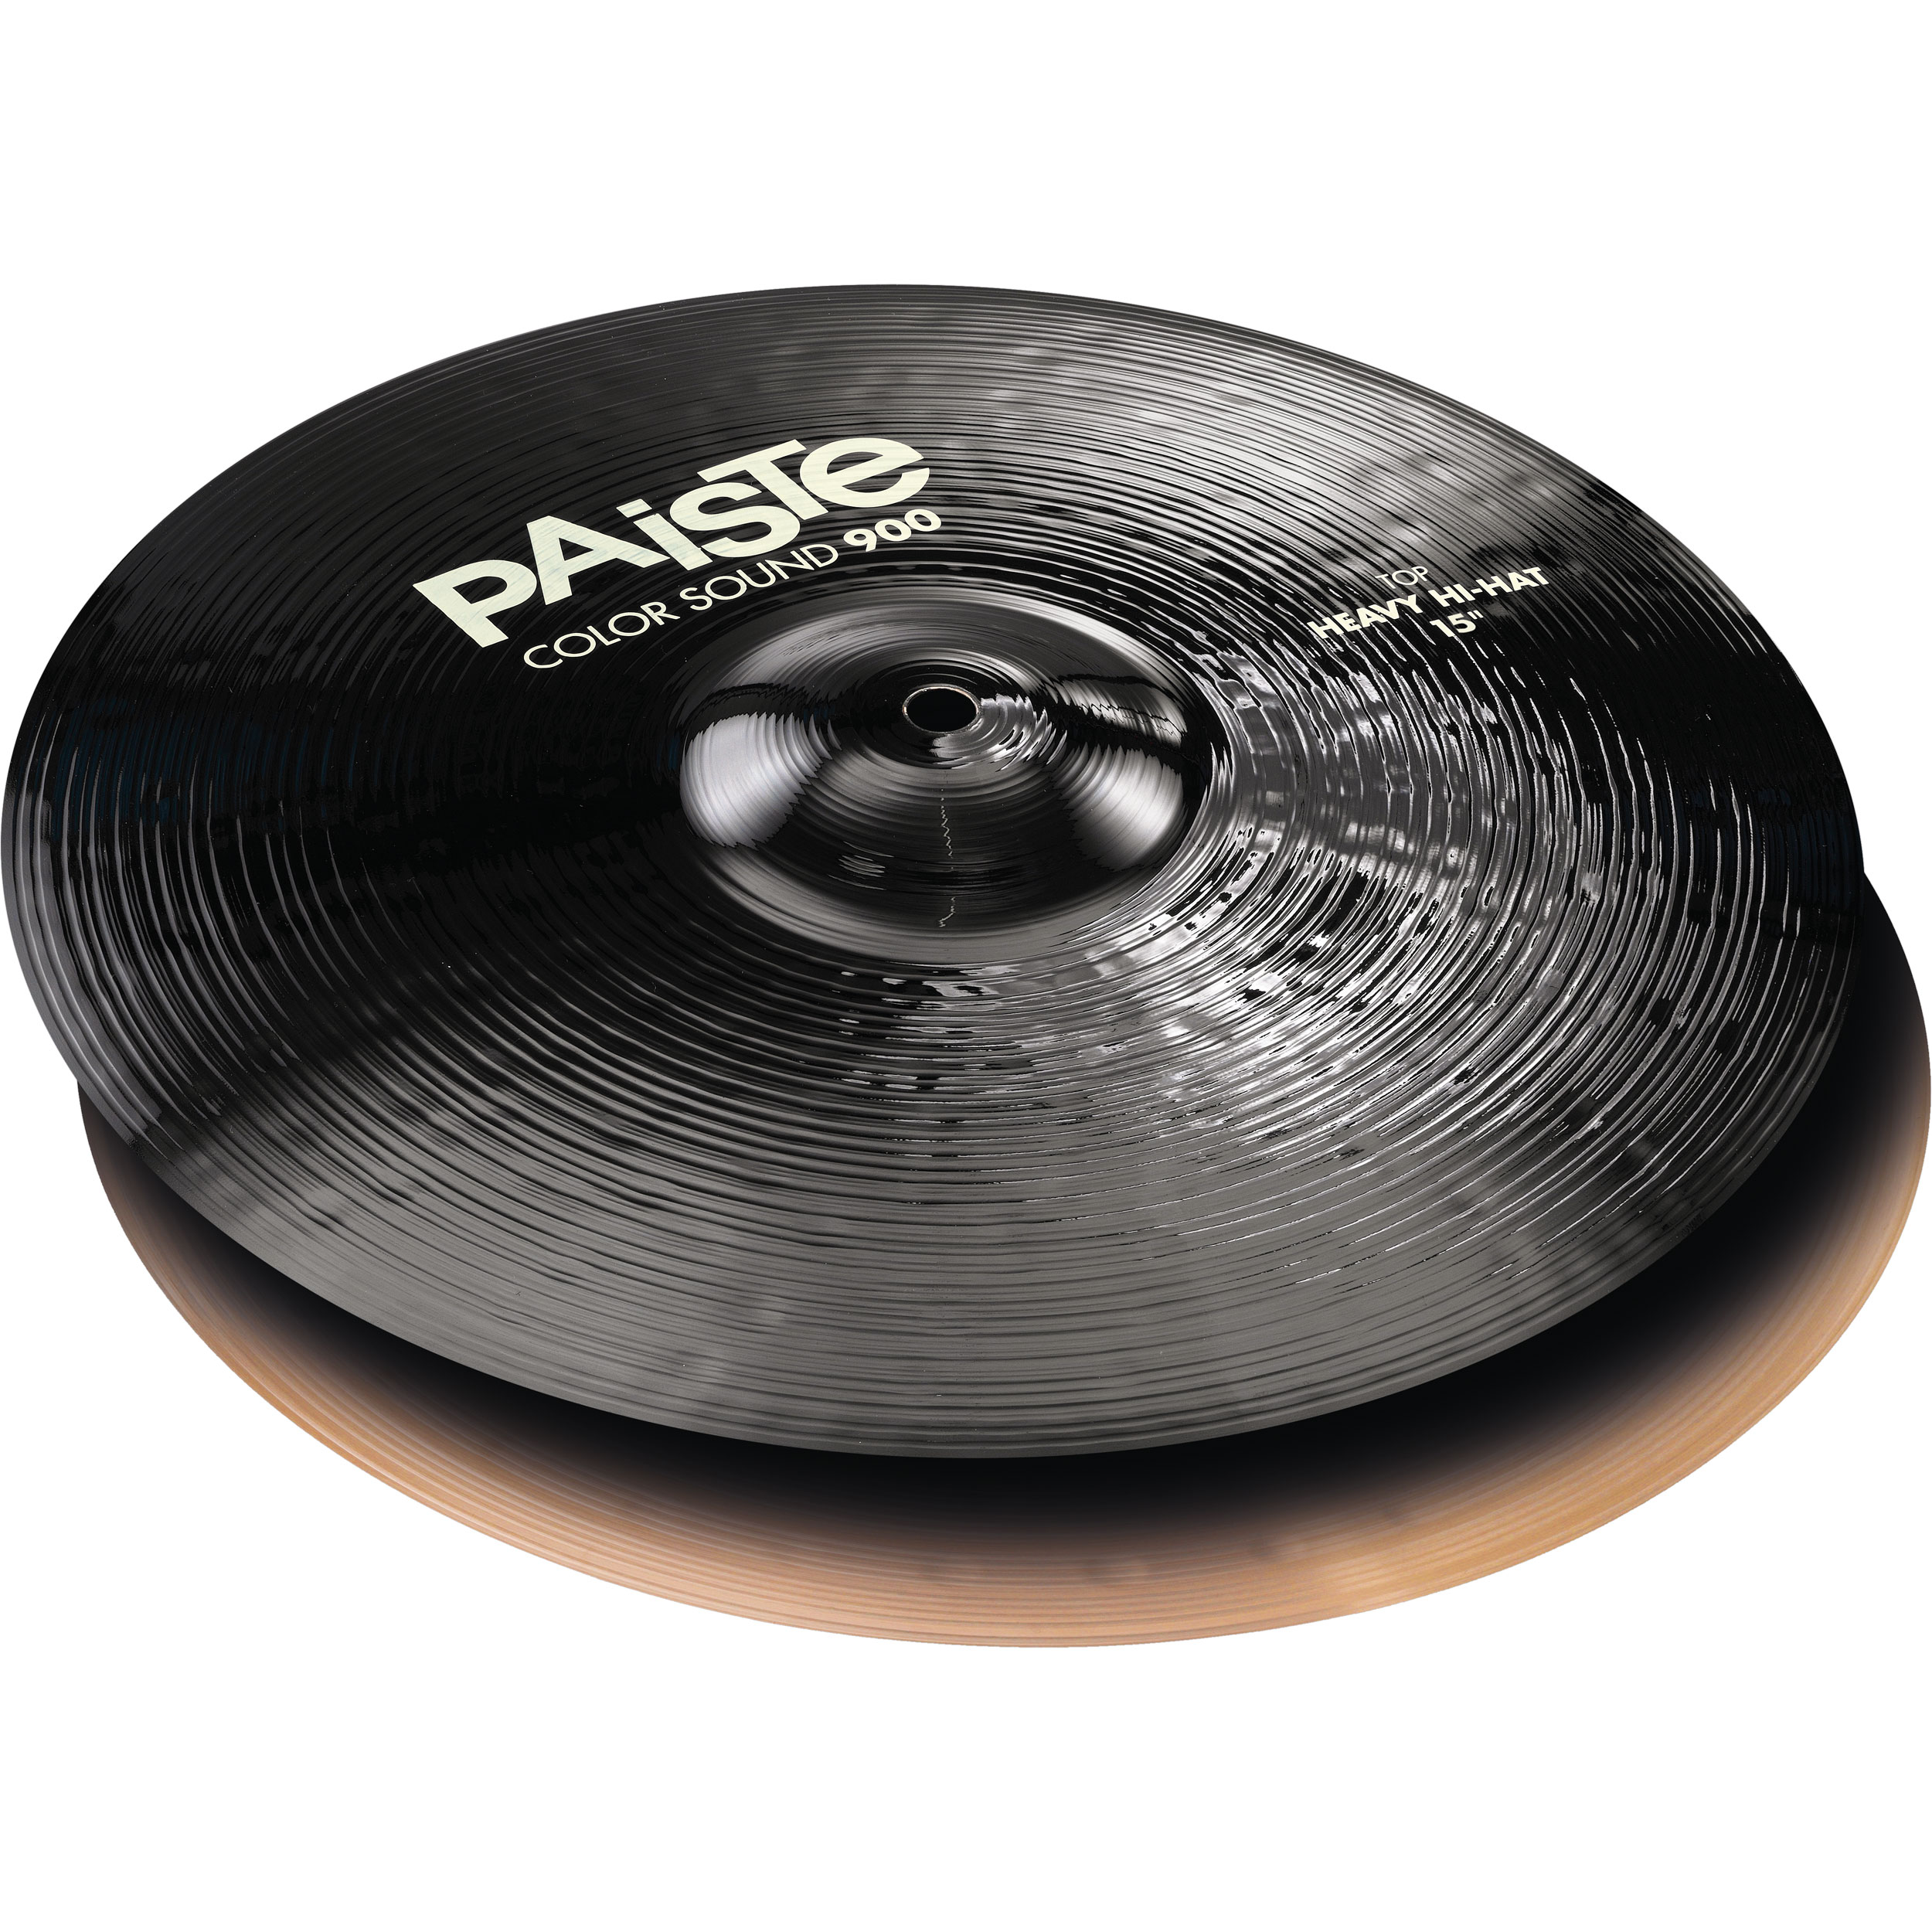 "Paiste 15"" Color Sound 900 Black Heavy Hi Hat Cymbals"